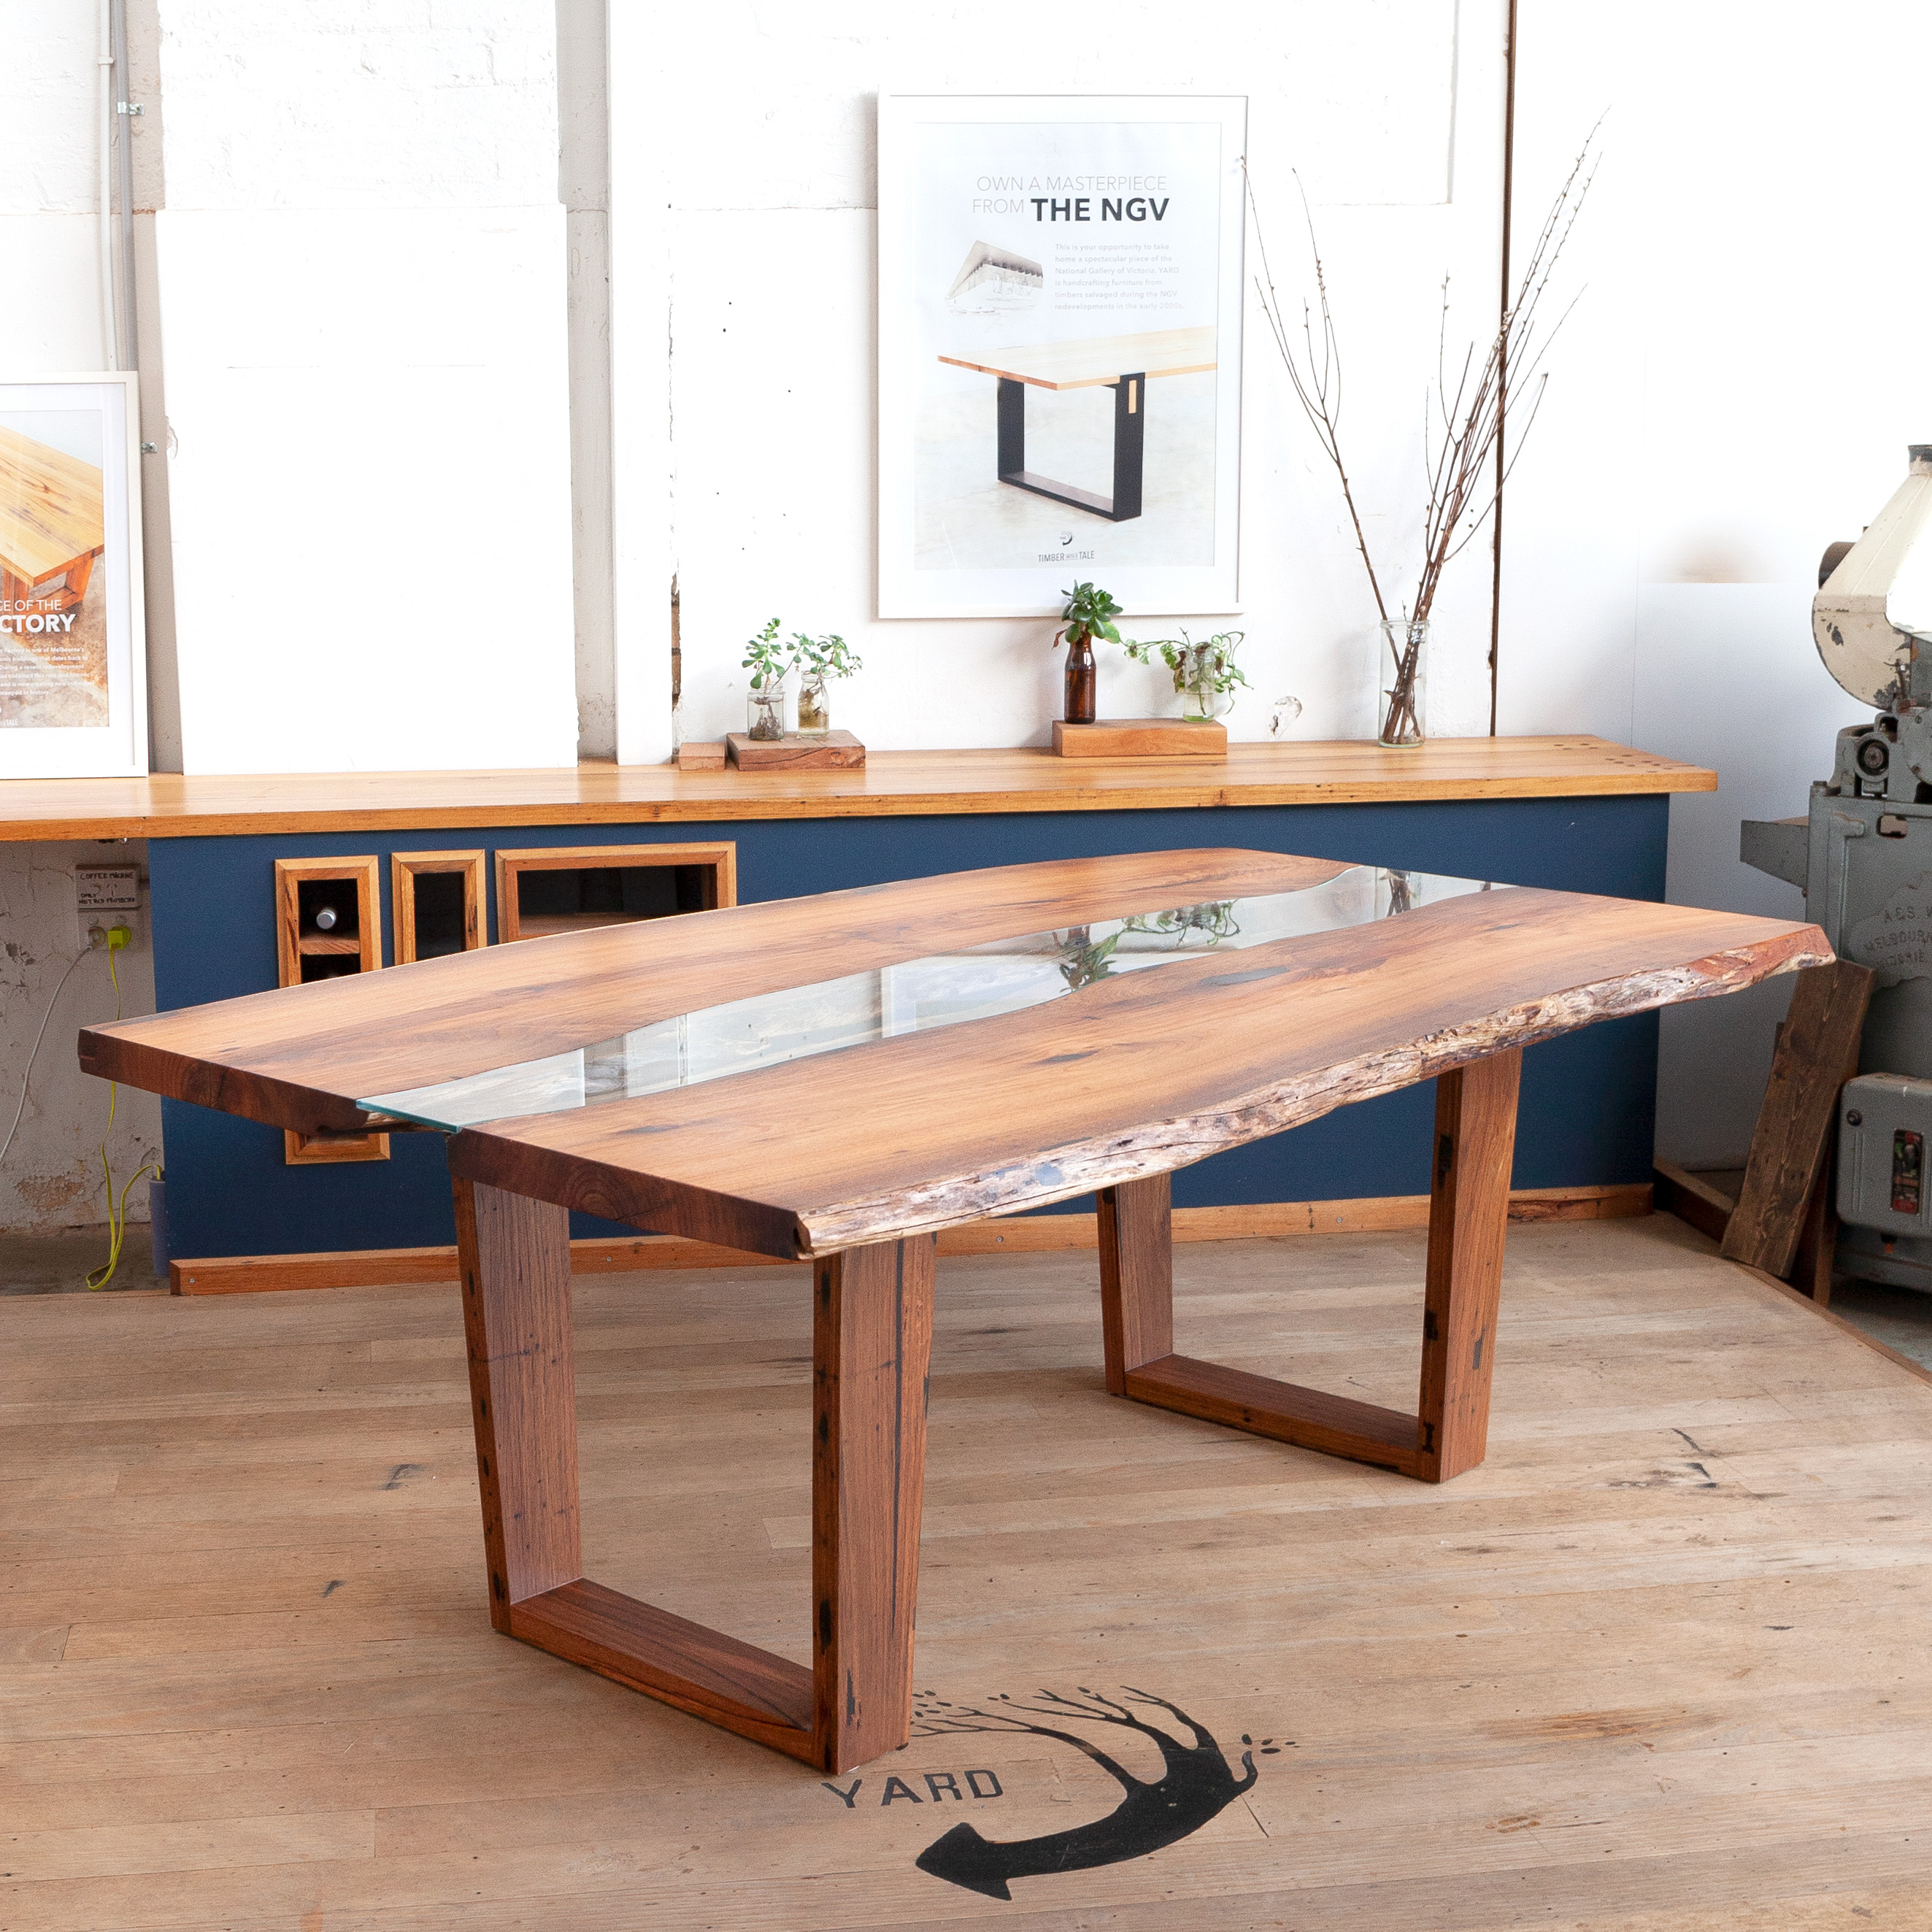 Blackwood timber dining table with glass inlay